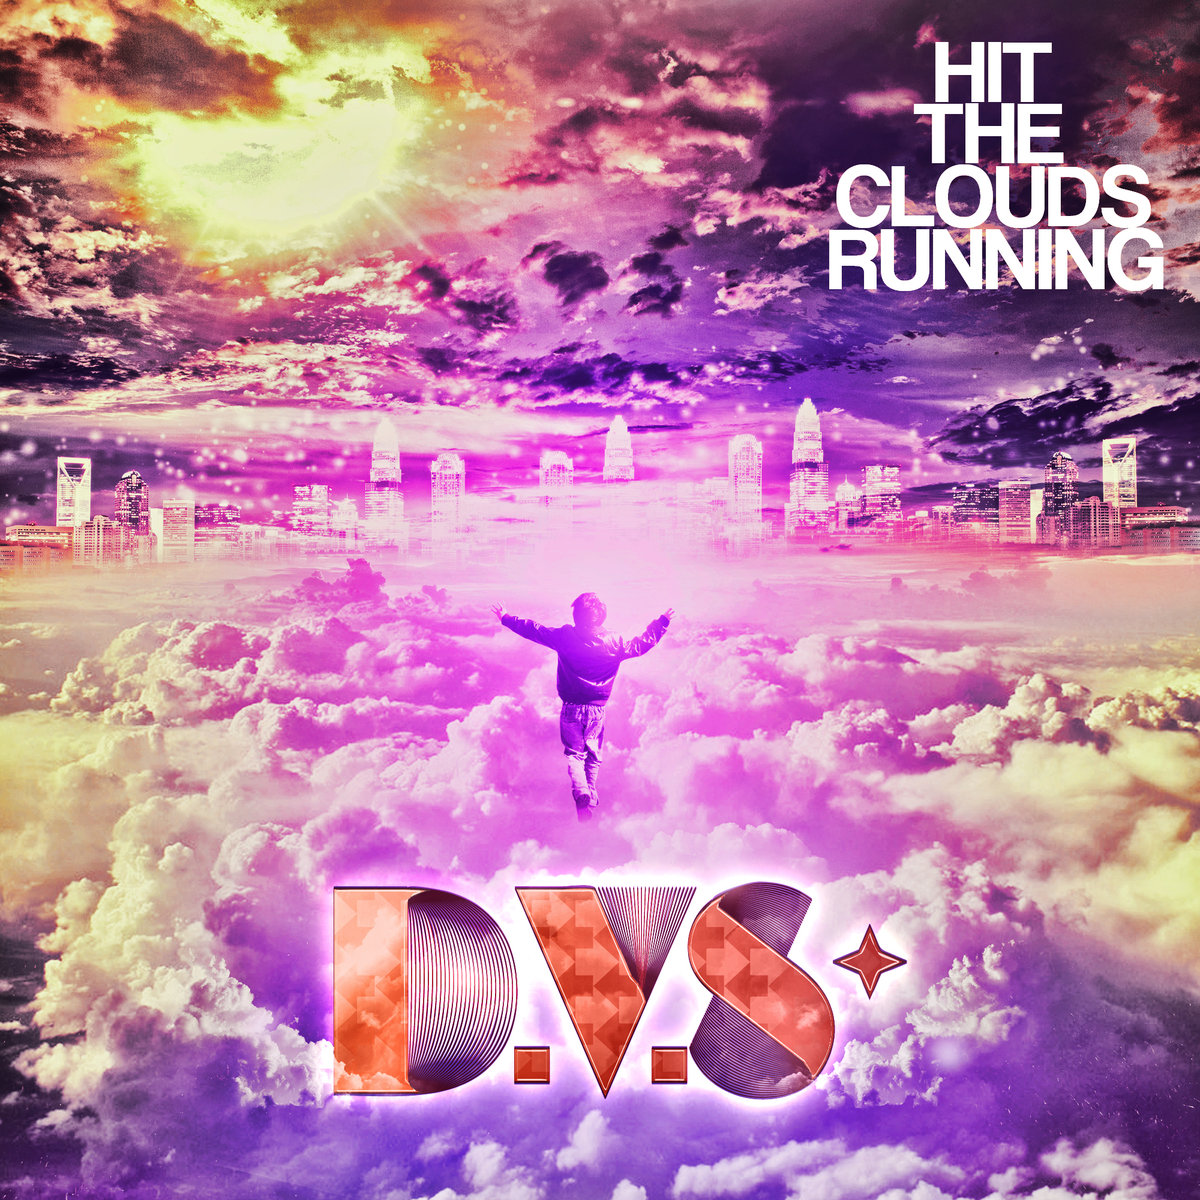 D.V.S* - Trapsody in Blue @ 'Hit The Clouds Running' album (electronica, guitar)